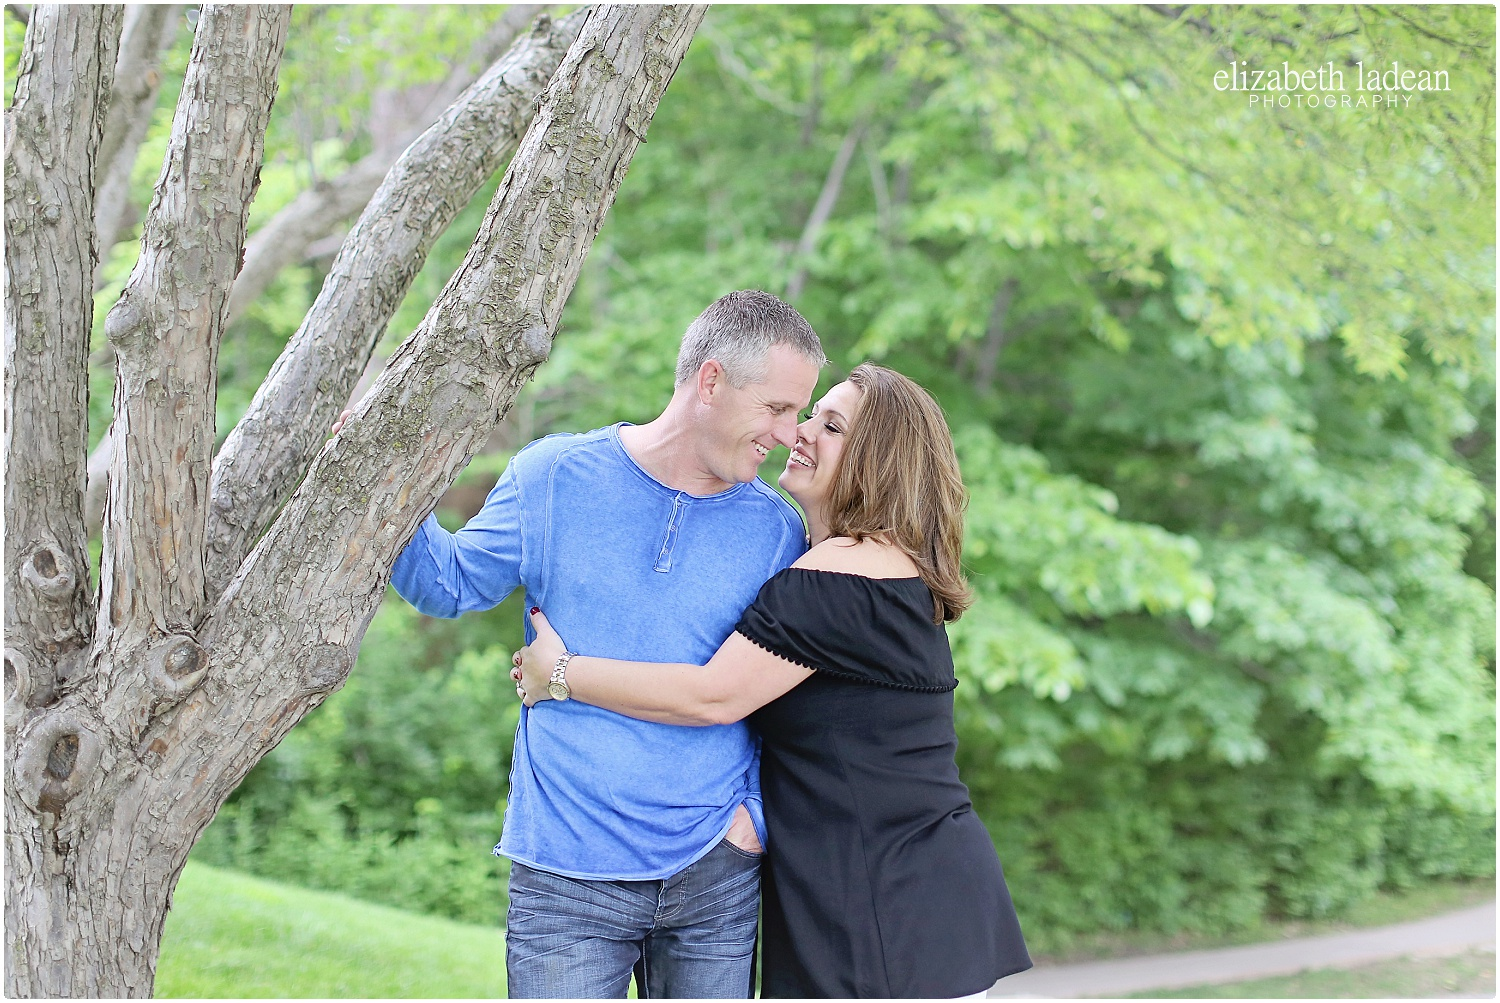 BriarcliffEngagementSession_ElizabethLadeanPhotography-B+R520-_5842.jpg